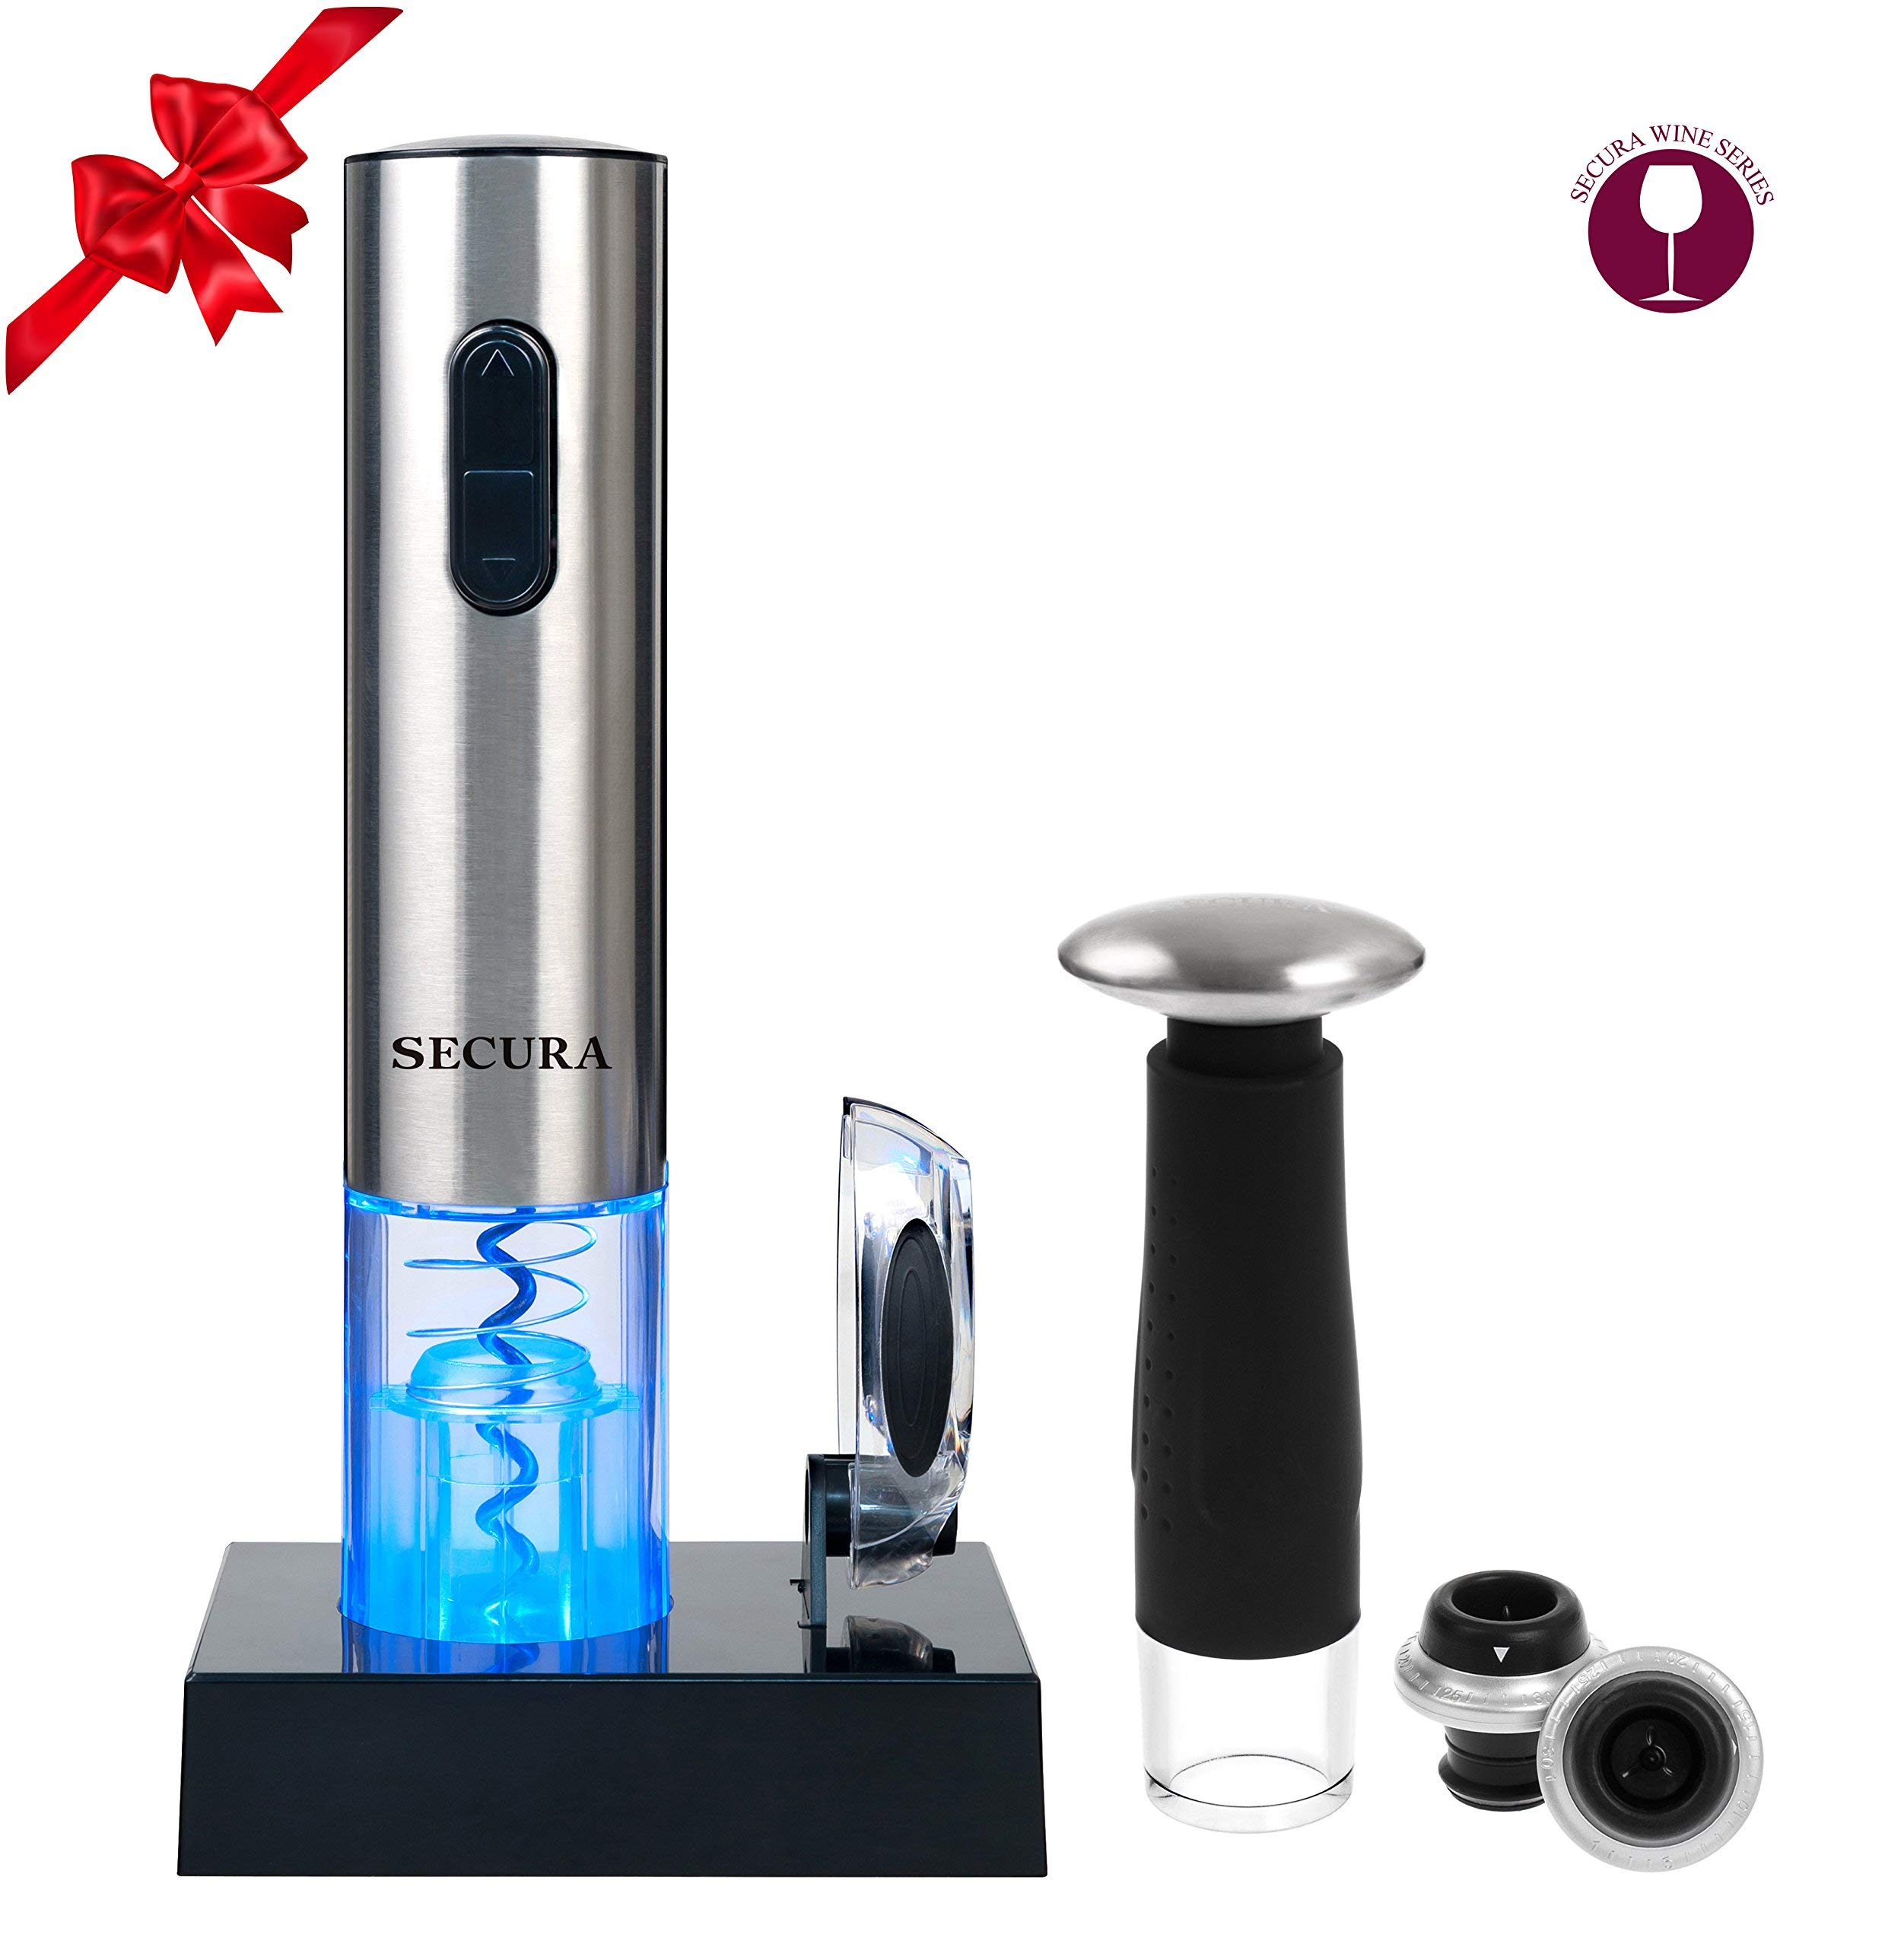 Secura Deluxe Wine Lovers Gift Set 7-Piece Wine Accessories Set Electric Wine Opener, Foil Cutter, Wine Saver Vacuum Pump + 2 Wine Stoppers